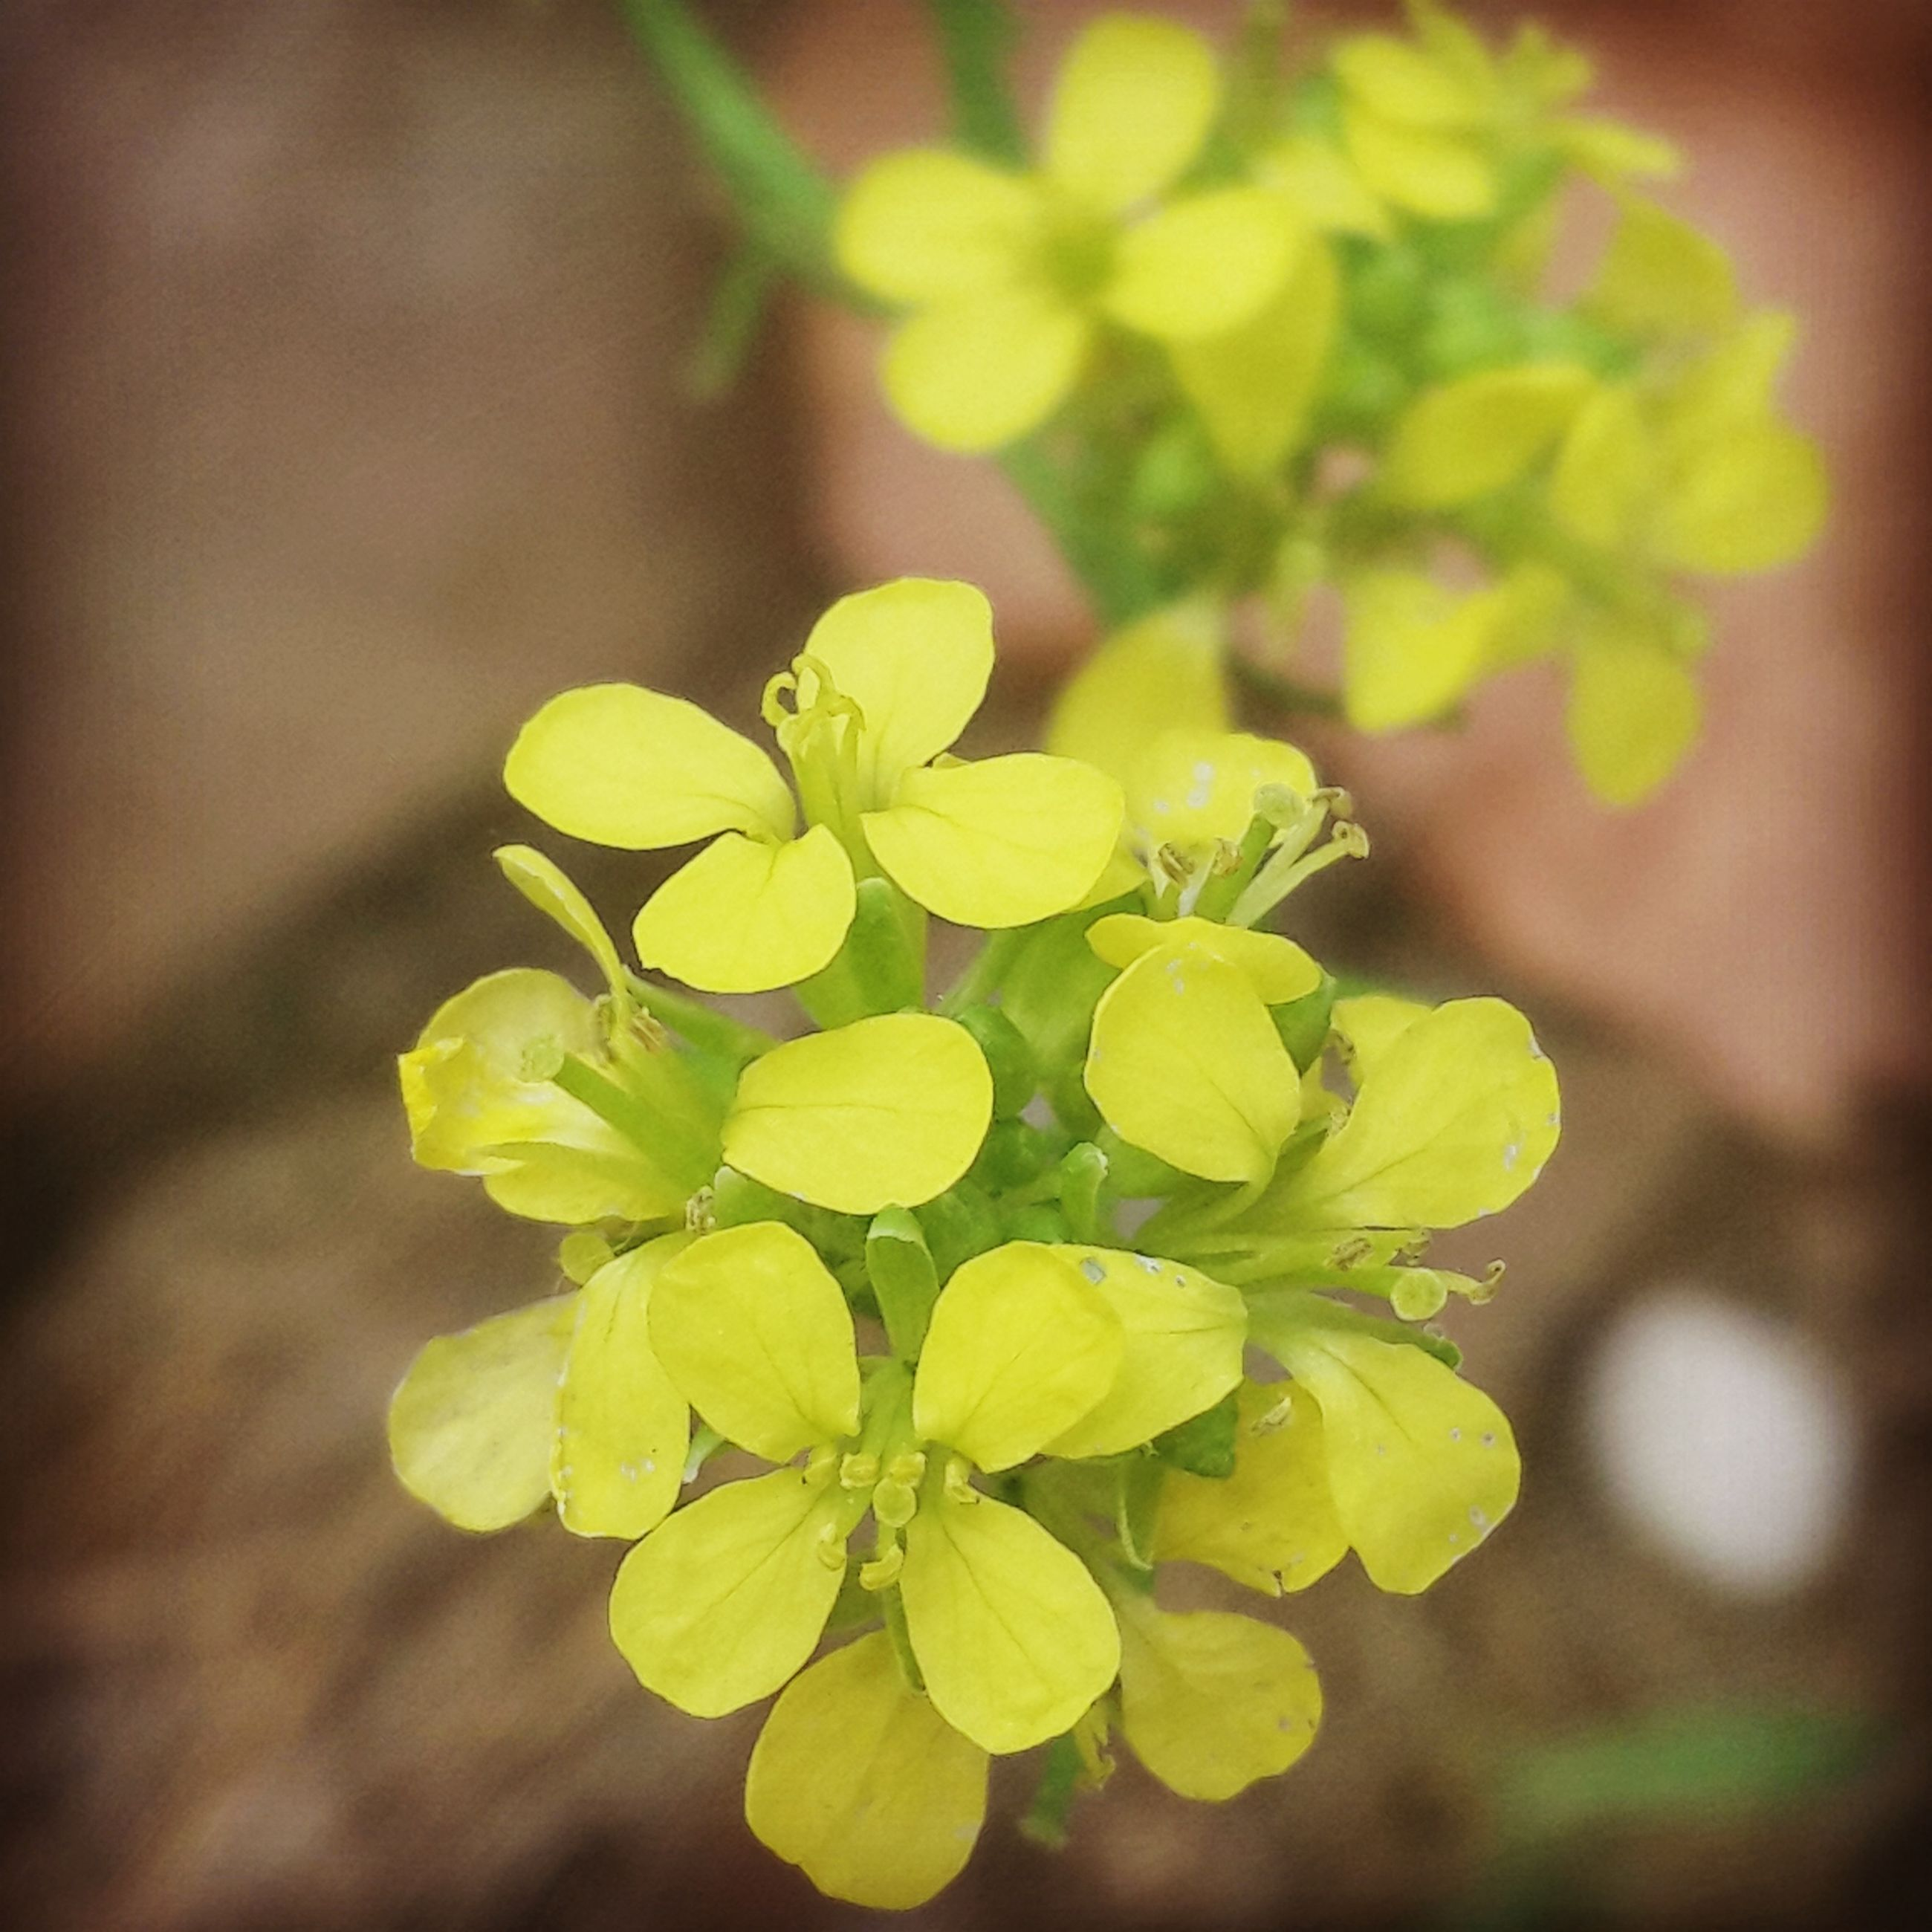 flower, growth, yellow, focus on foreground, freshness, close-up, fragility, beauty in nature, nature, plant, petal, leaf, selective focus, outdoors, day, bud, blooming, no people, flower head, green color